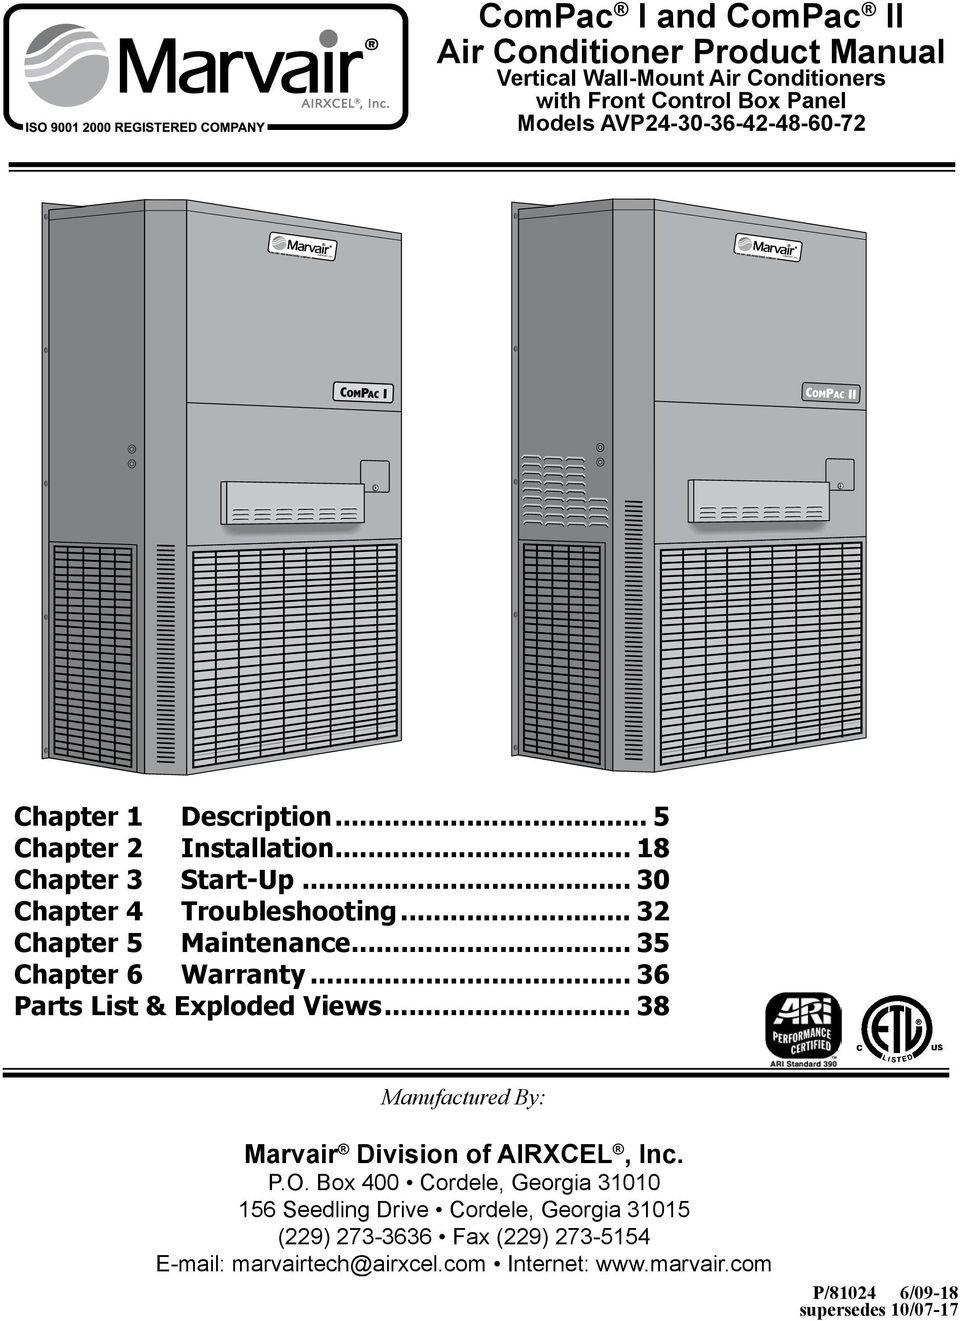 compac i and compac ii air conditioner product manual pdf rh docplayer net Marvair Distributors Marvair Distributors